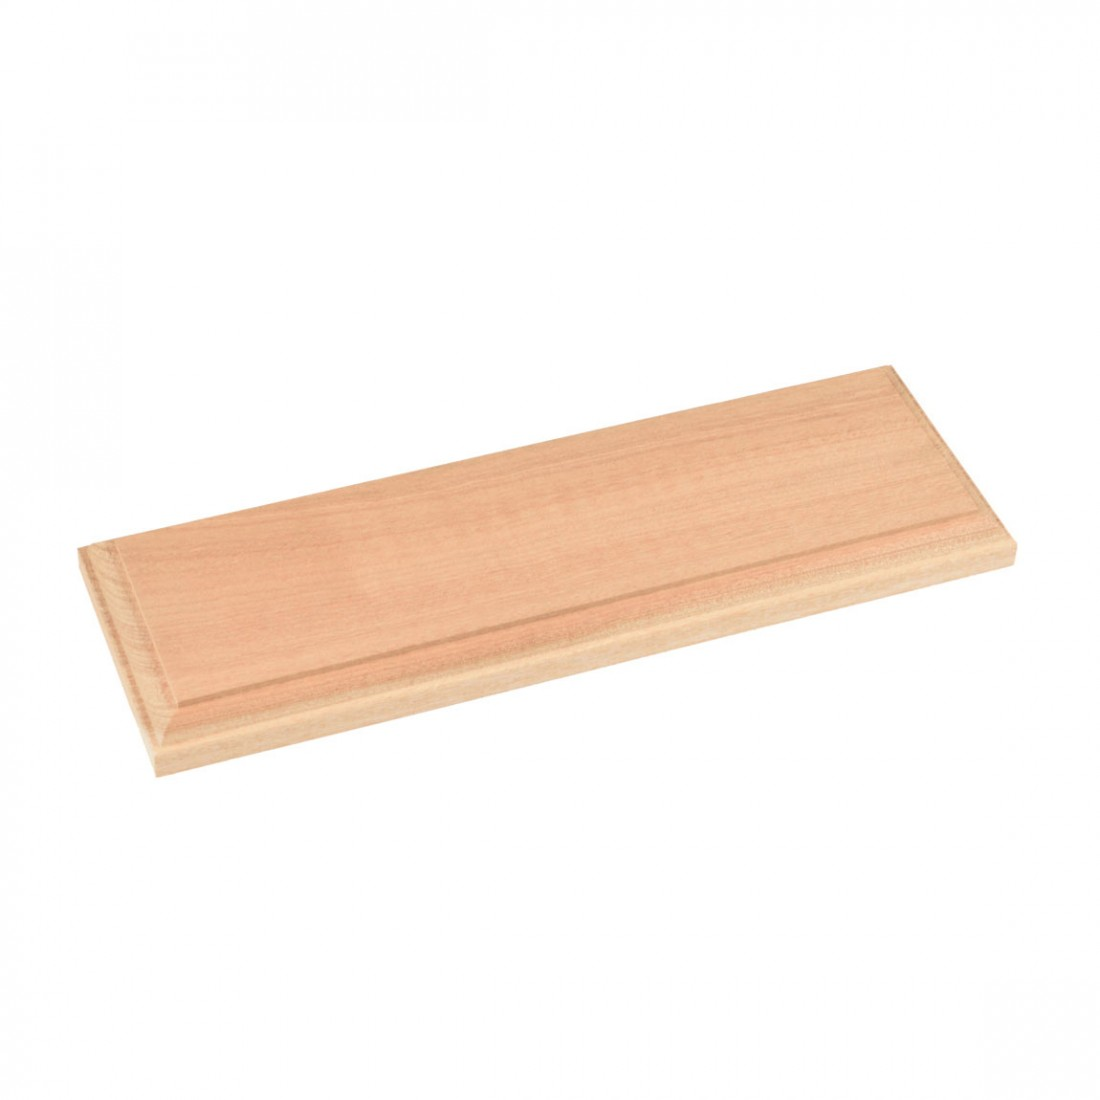 Natural wood baseboards cm.30x10x2